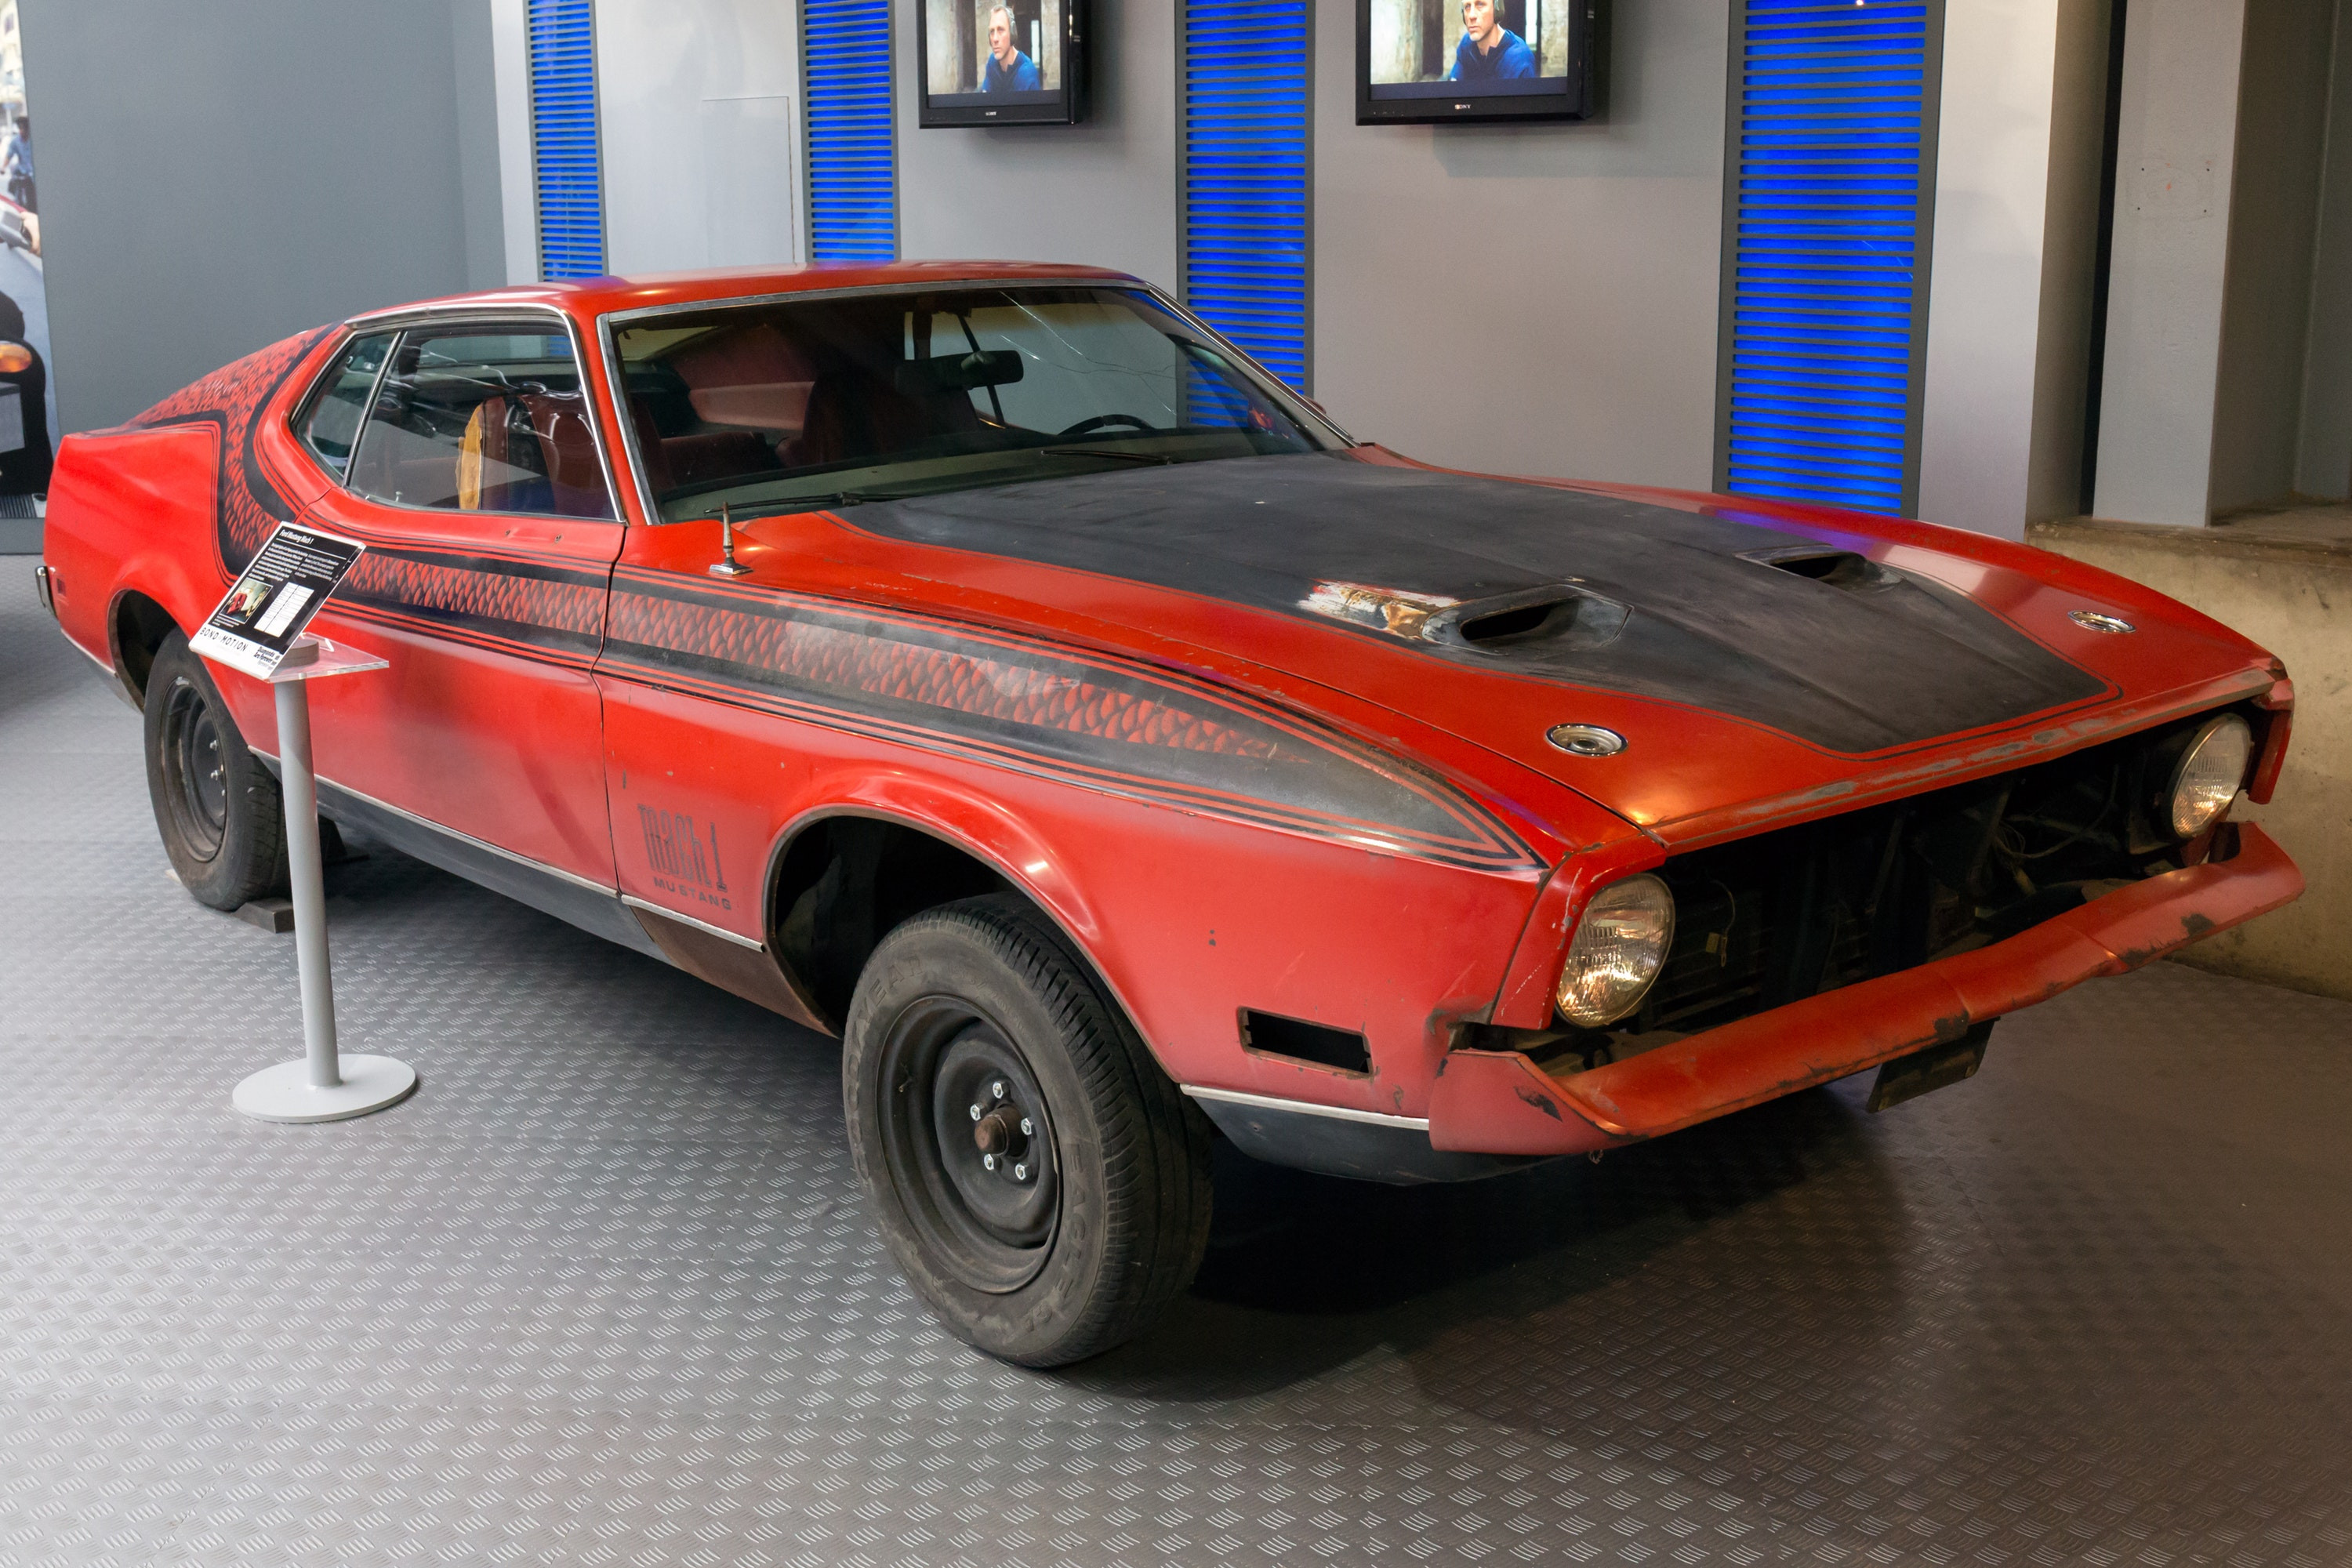 Ford Mustang Mach 1 in Red